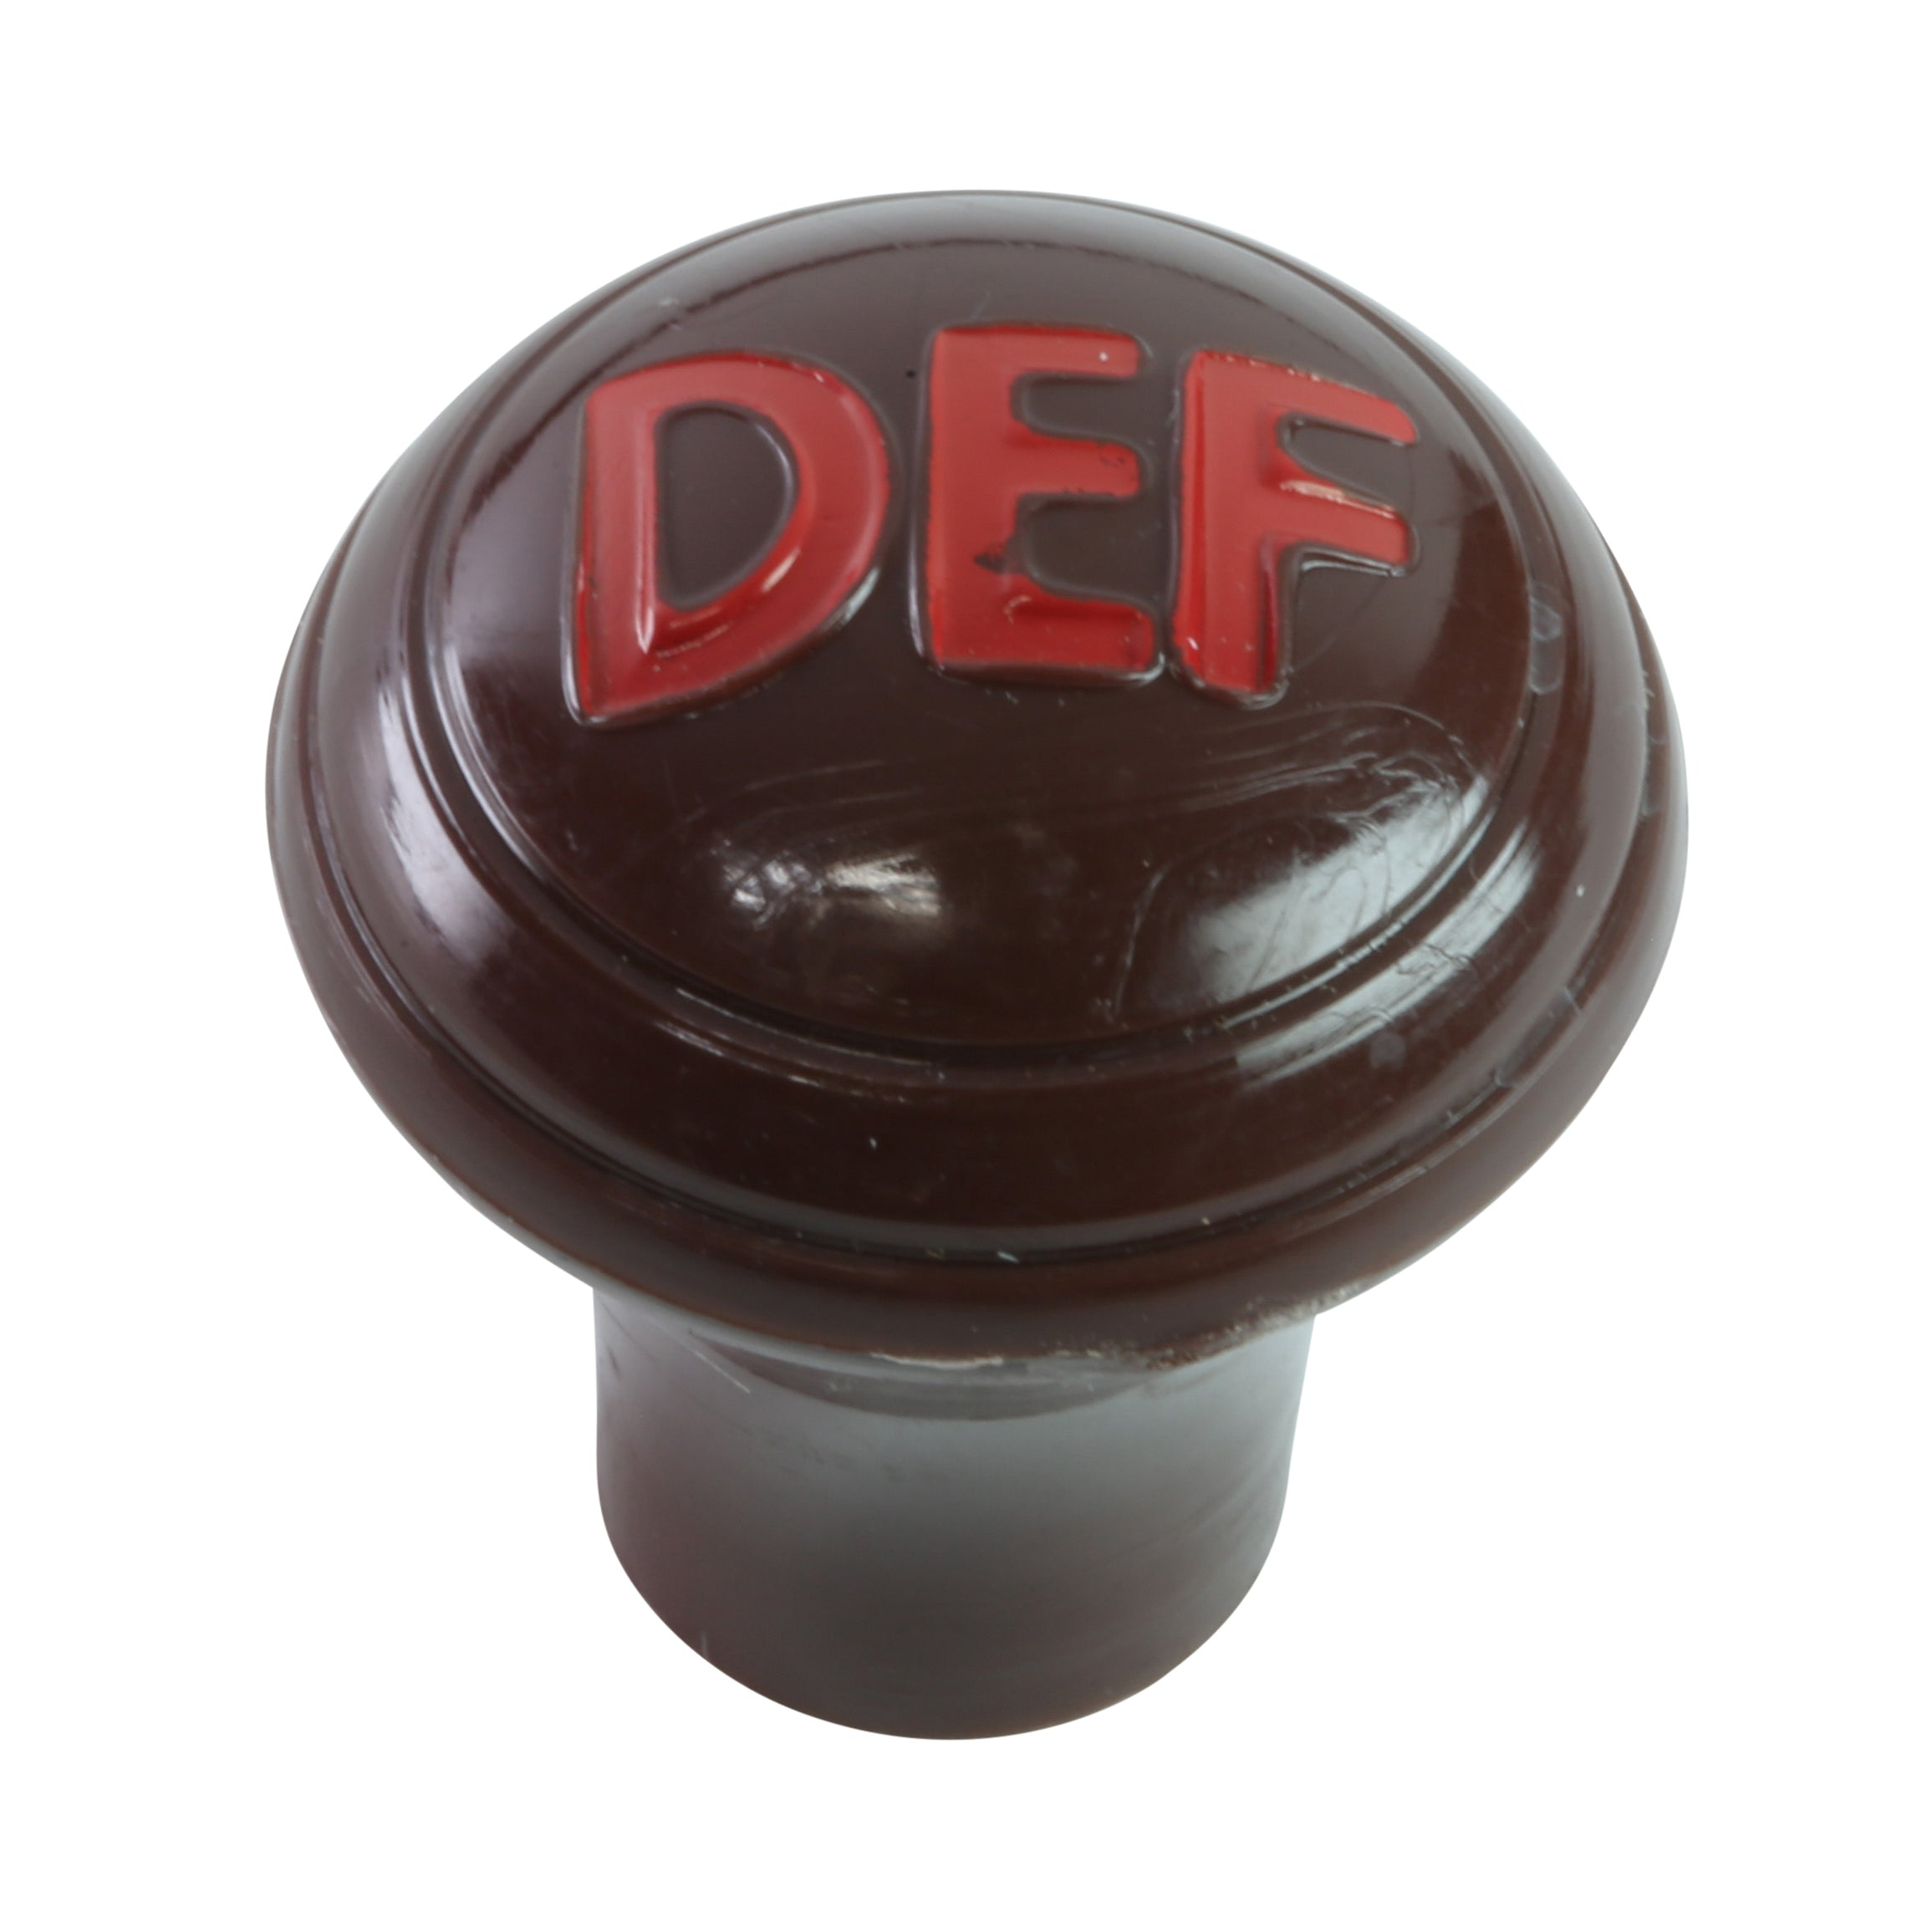 Hot Water Heater Defroster Knob • 1942